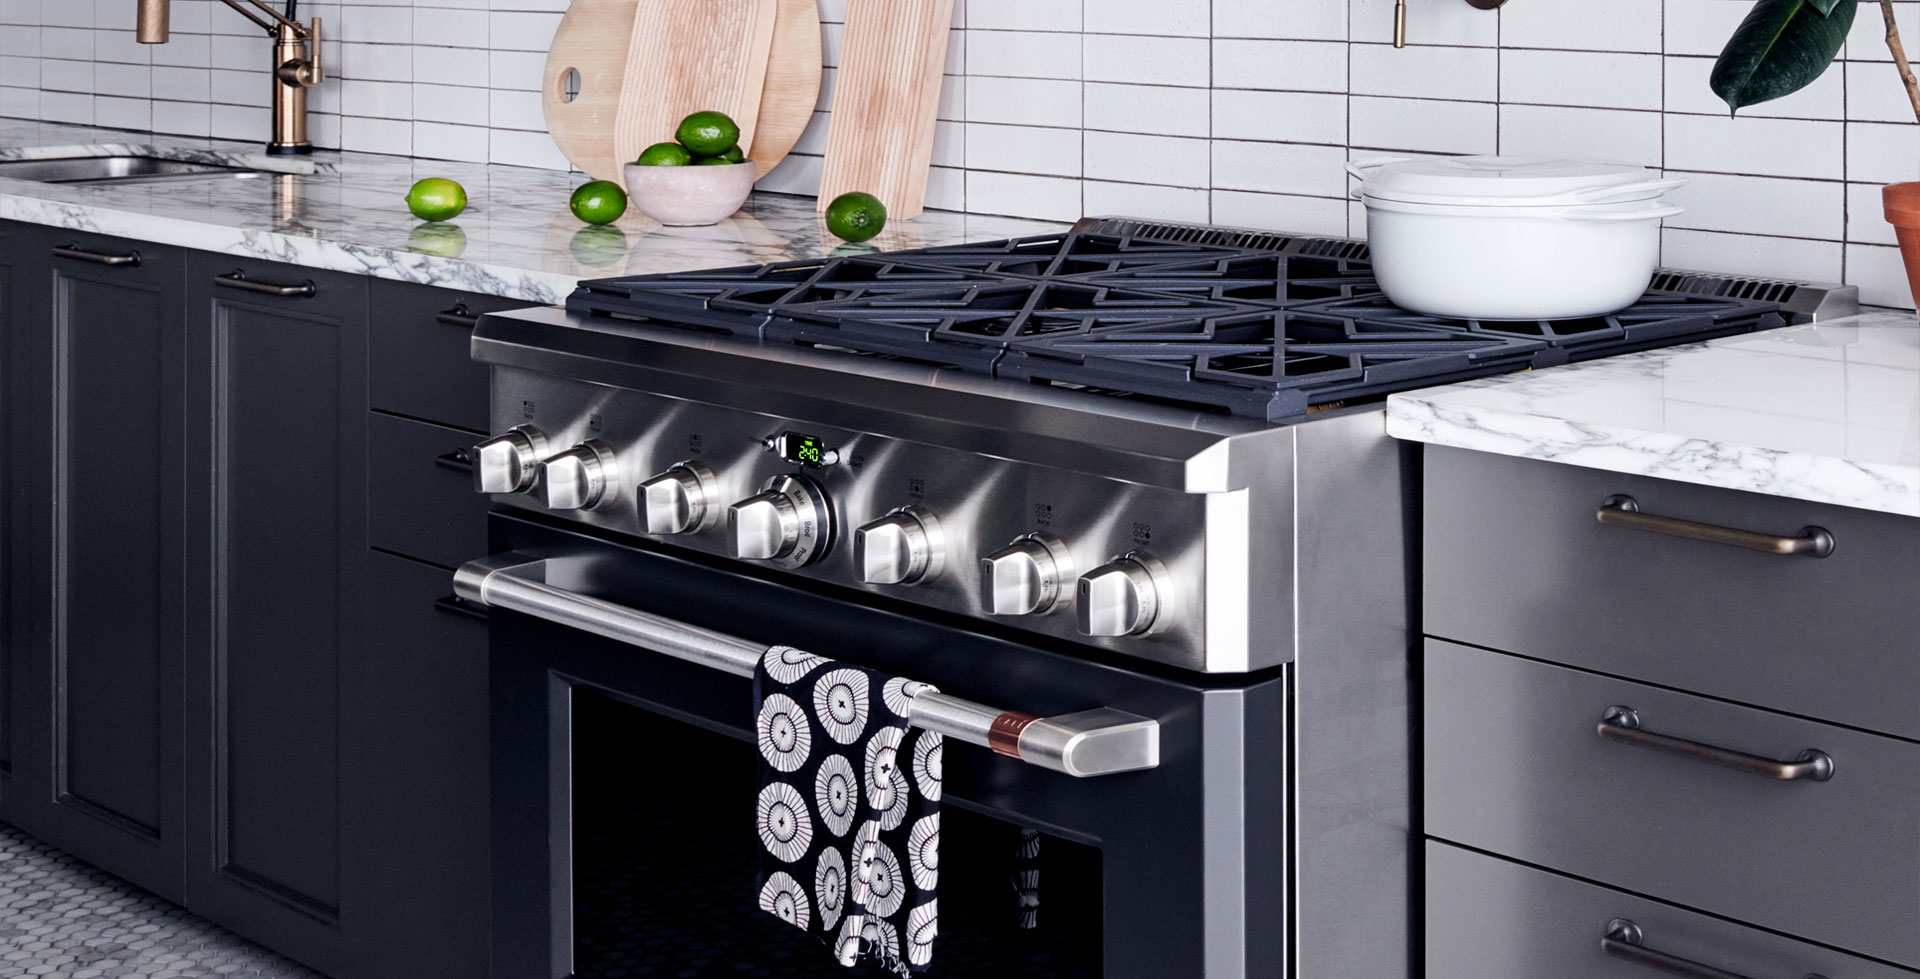 matte black gas range with towel hanging on handle